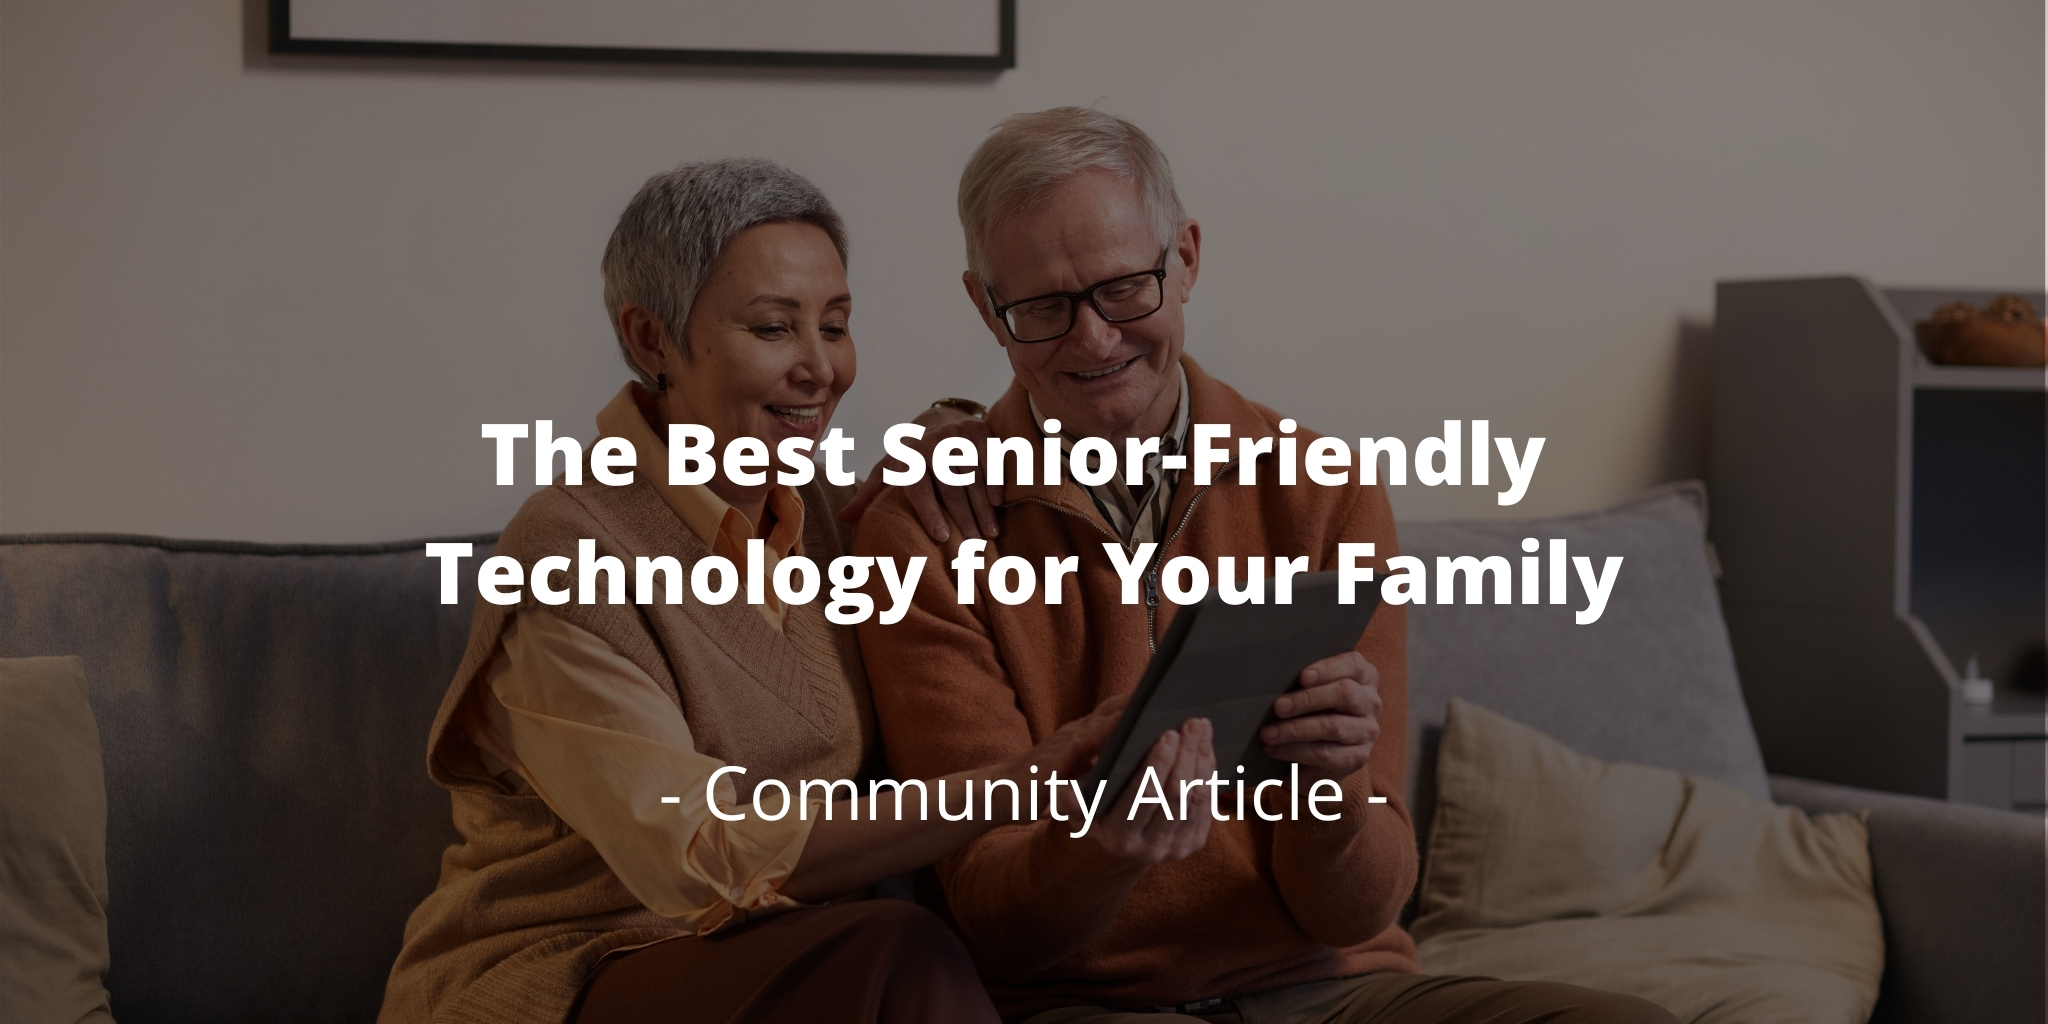 The Best Senior-Friendly Technology for Your Family